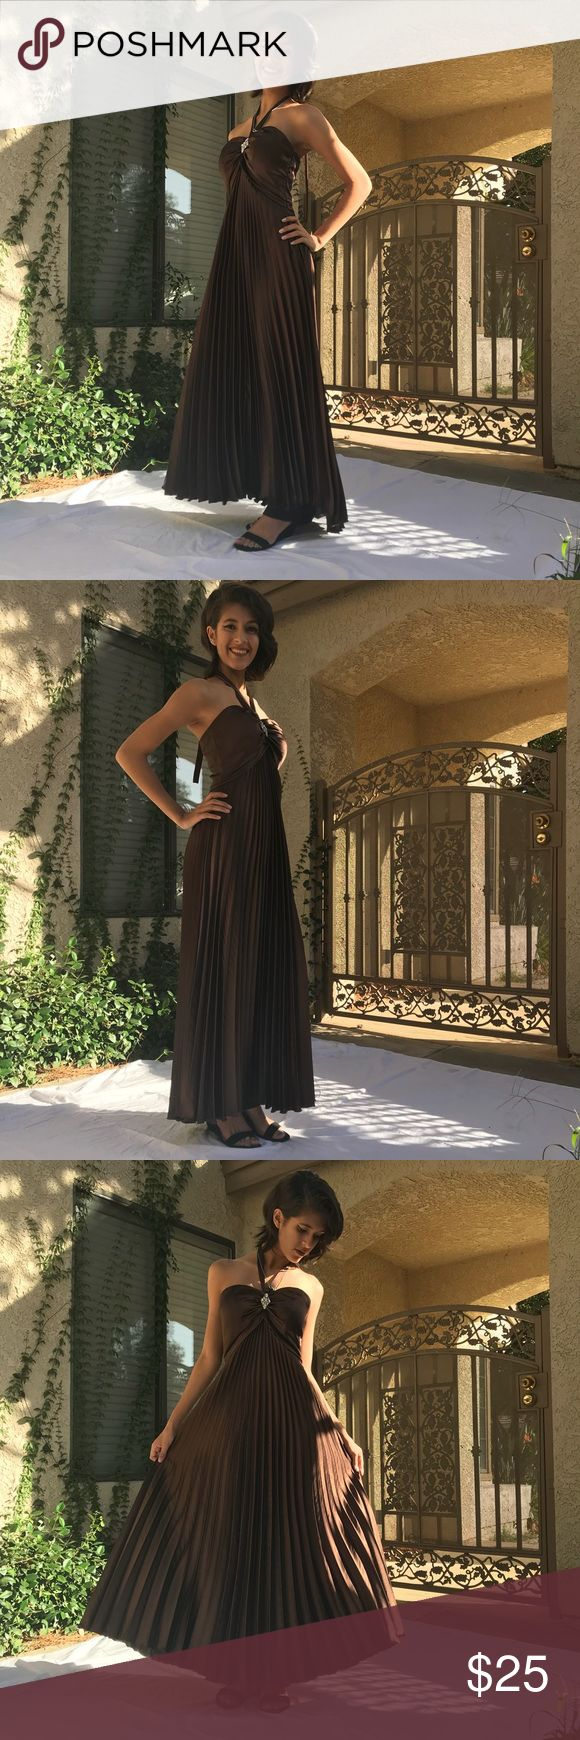 PROM DRESS! Beautiful satin brown dress, perfect and elegant for that special night dancing the night away! Spin and look gorgeous with the mermaid fold of the dress! Pairing with black and silver heels pops the outfit! Group USA Dresses Prom